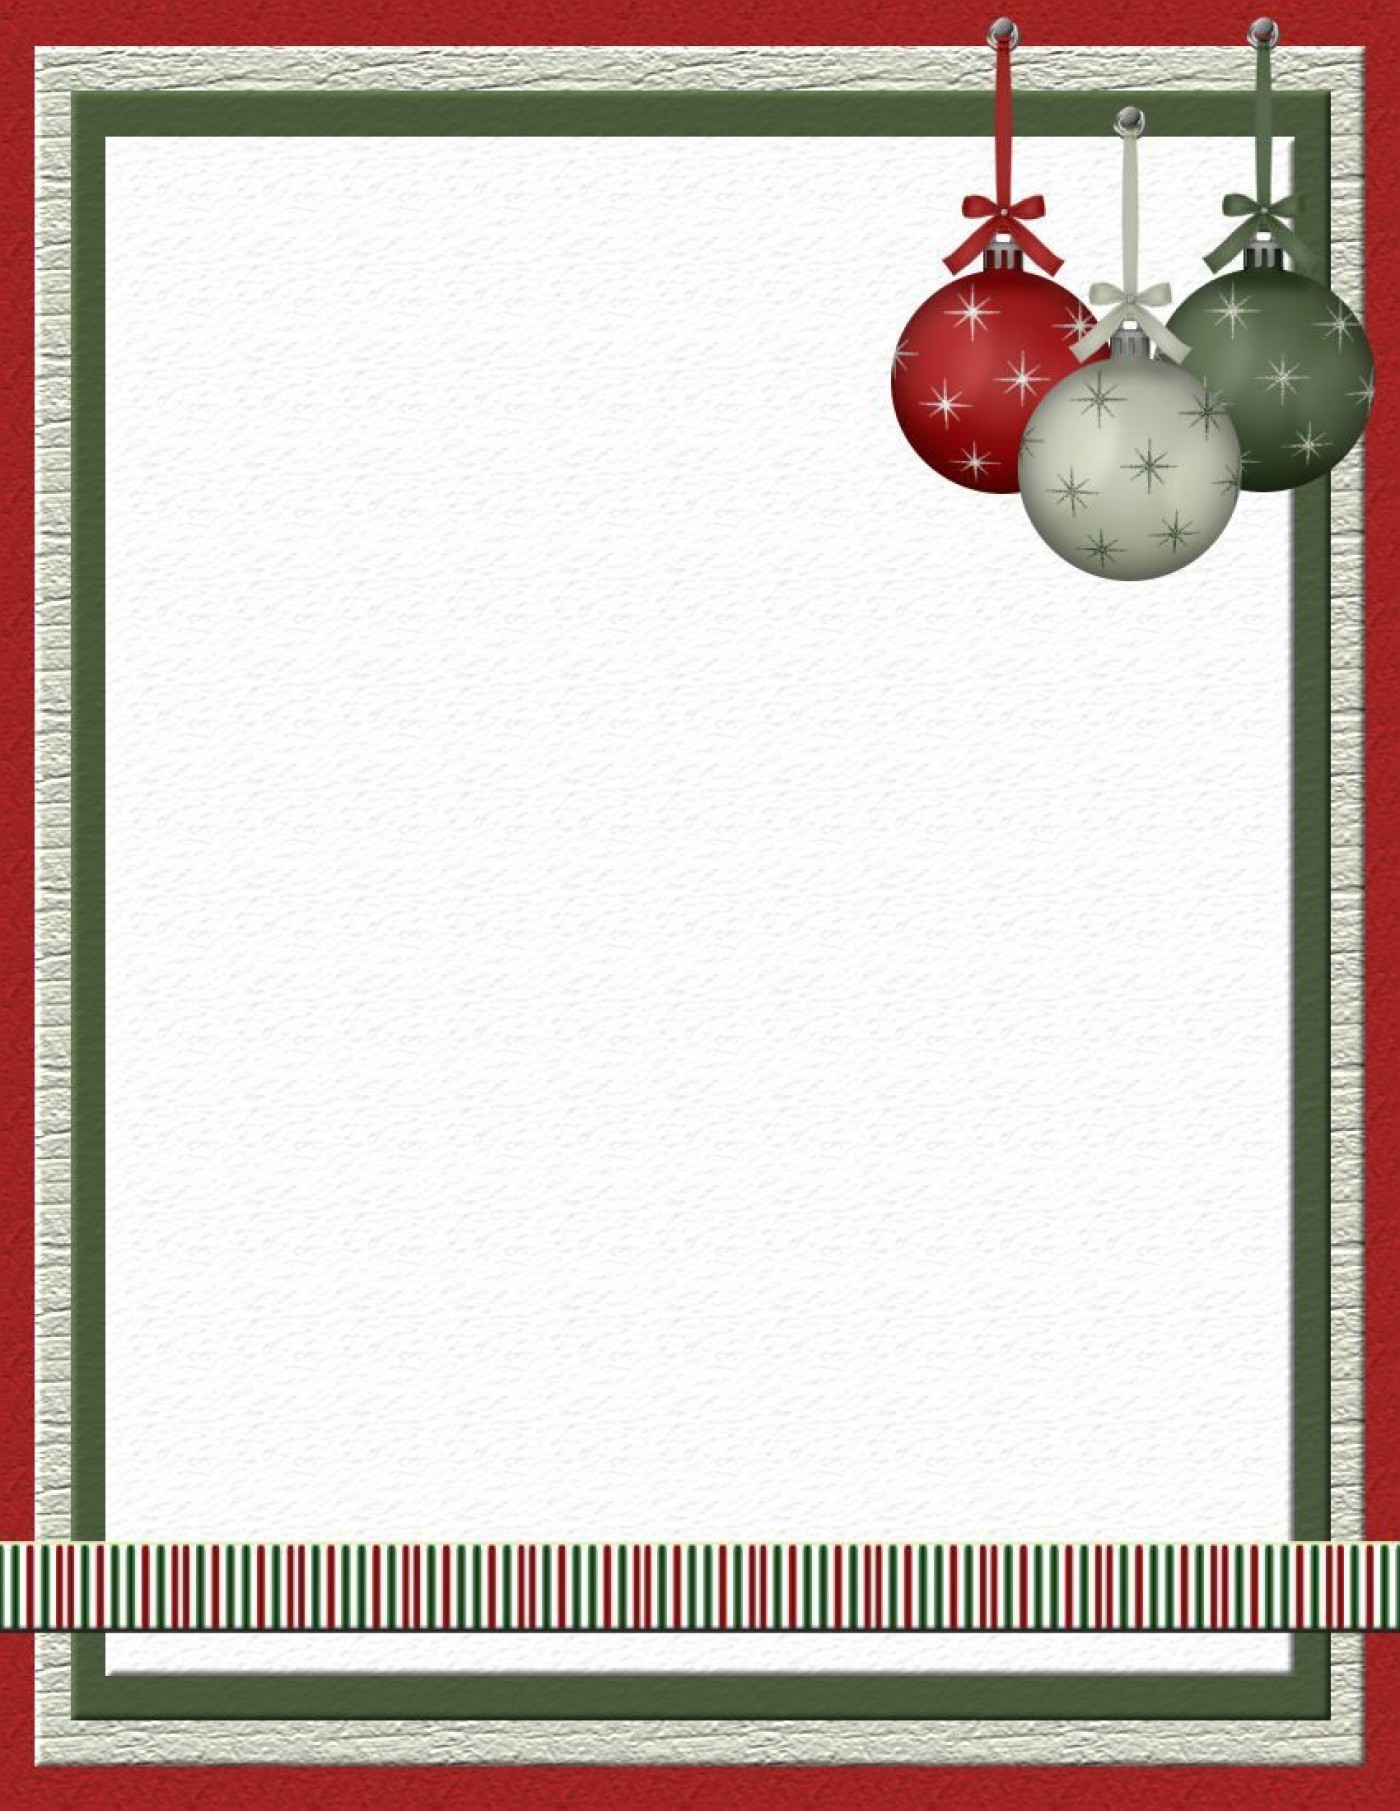 003 Staggering Free Holiday Stationery Template For Word Sample 1400